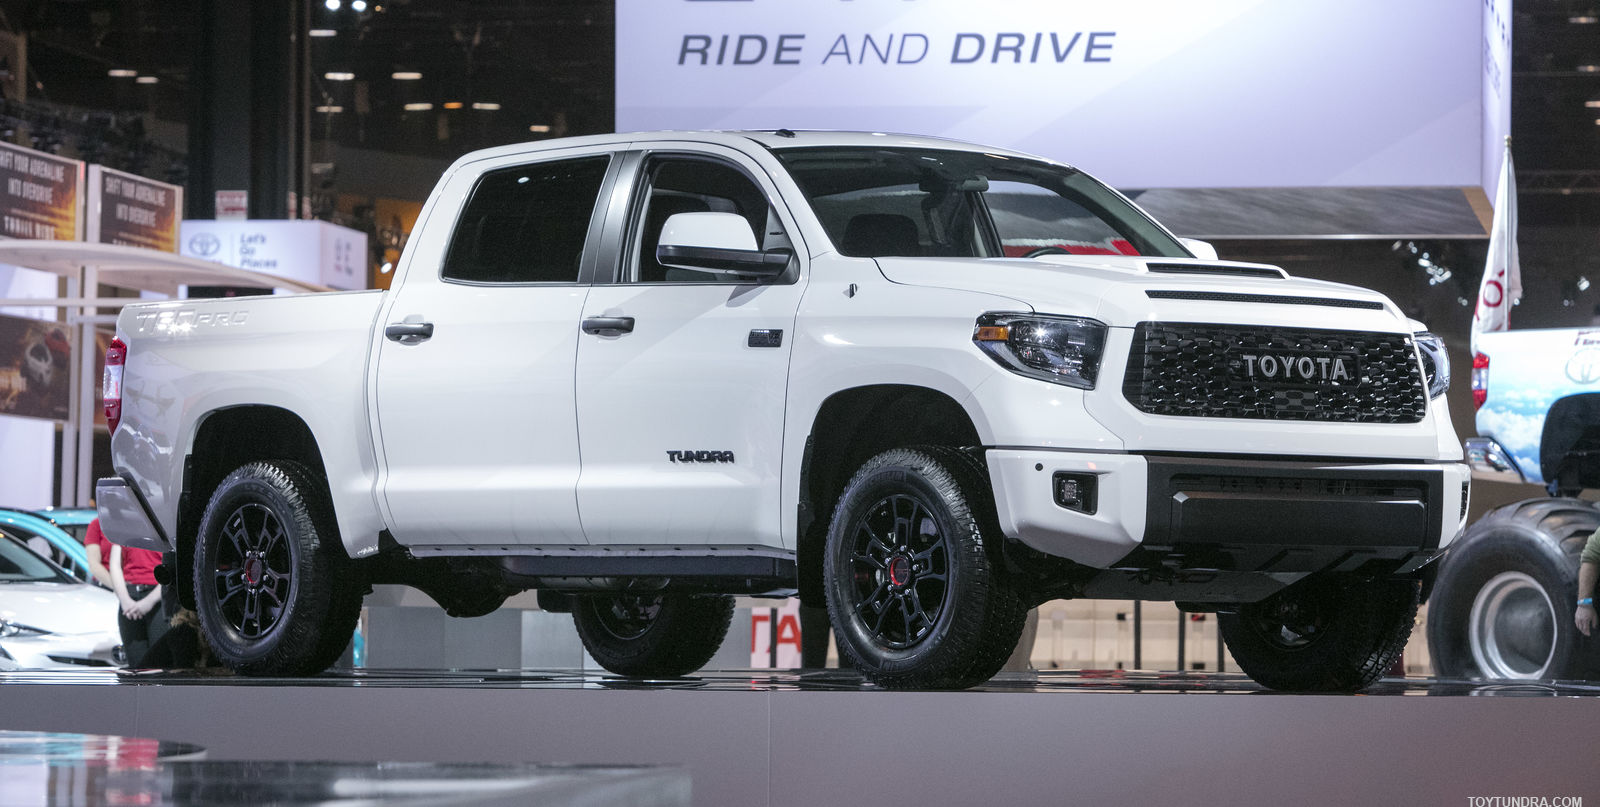 Toyota Tundra 2019 – RIDE AND DRIVE